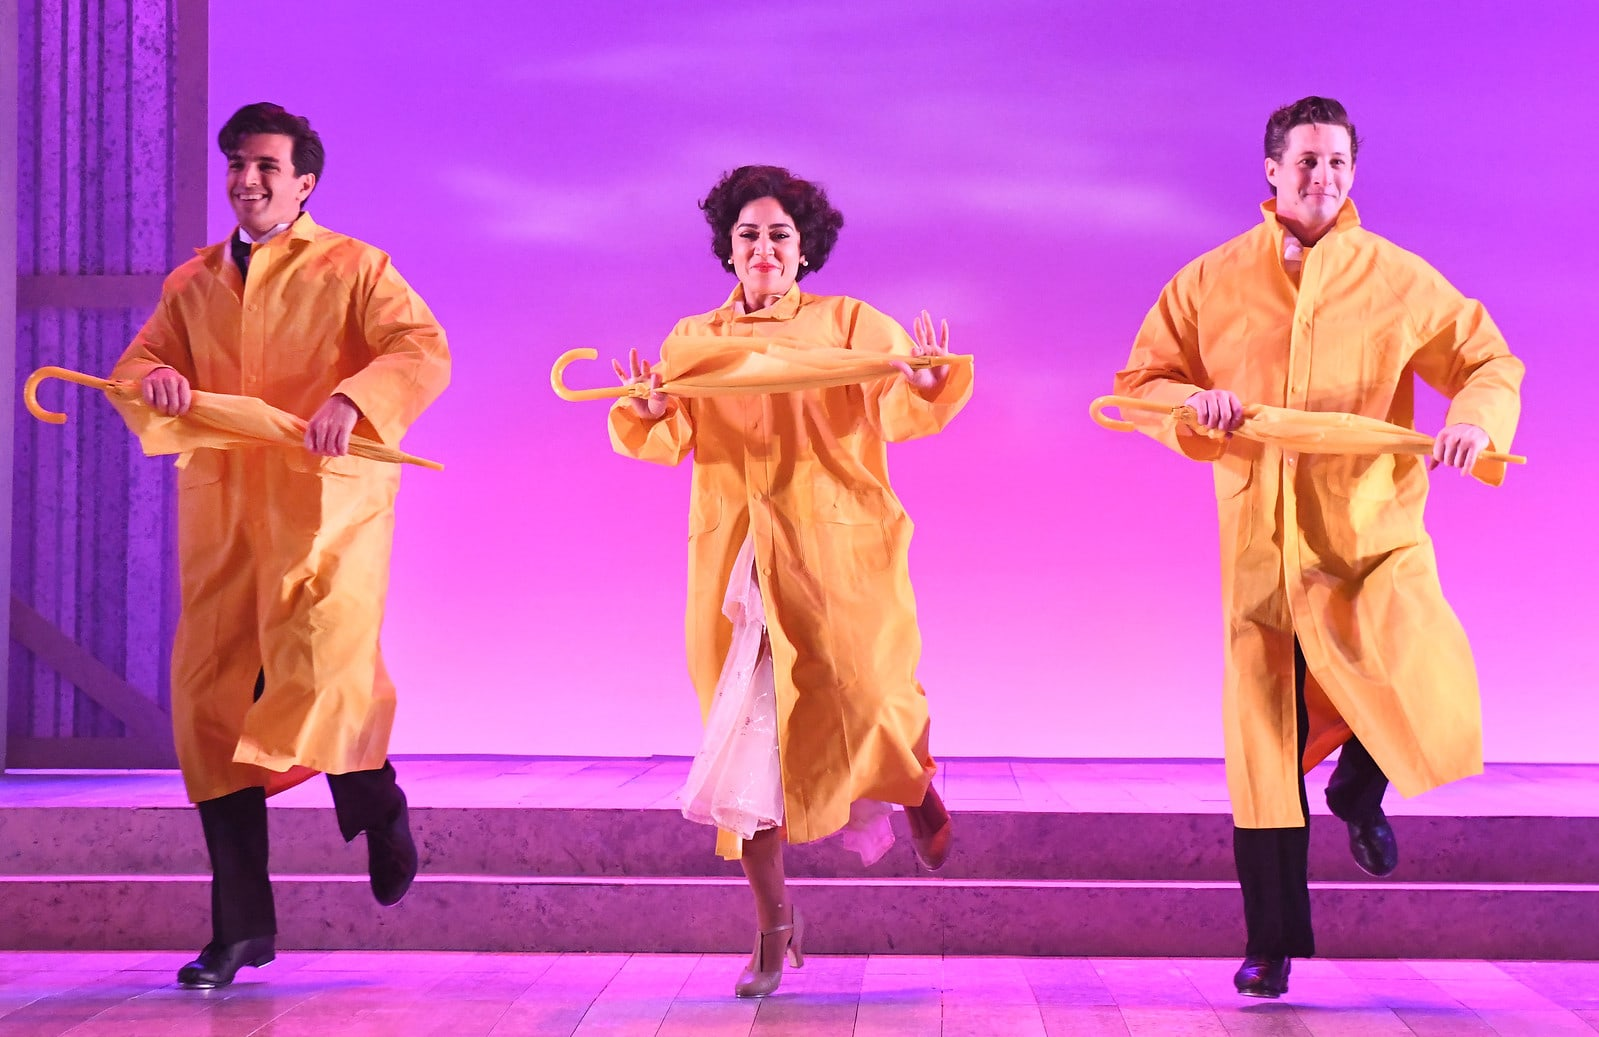 Jacob Scott Tischler as Cosmo Brown, Amanda Castro as Kathy Selden, and Rhett Guter as Don Lockwood in 'Singin' in the Rain' at Olney Theatre Center. Photo by Stan Barouh Photography.